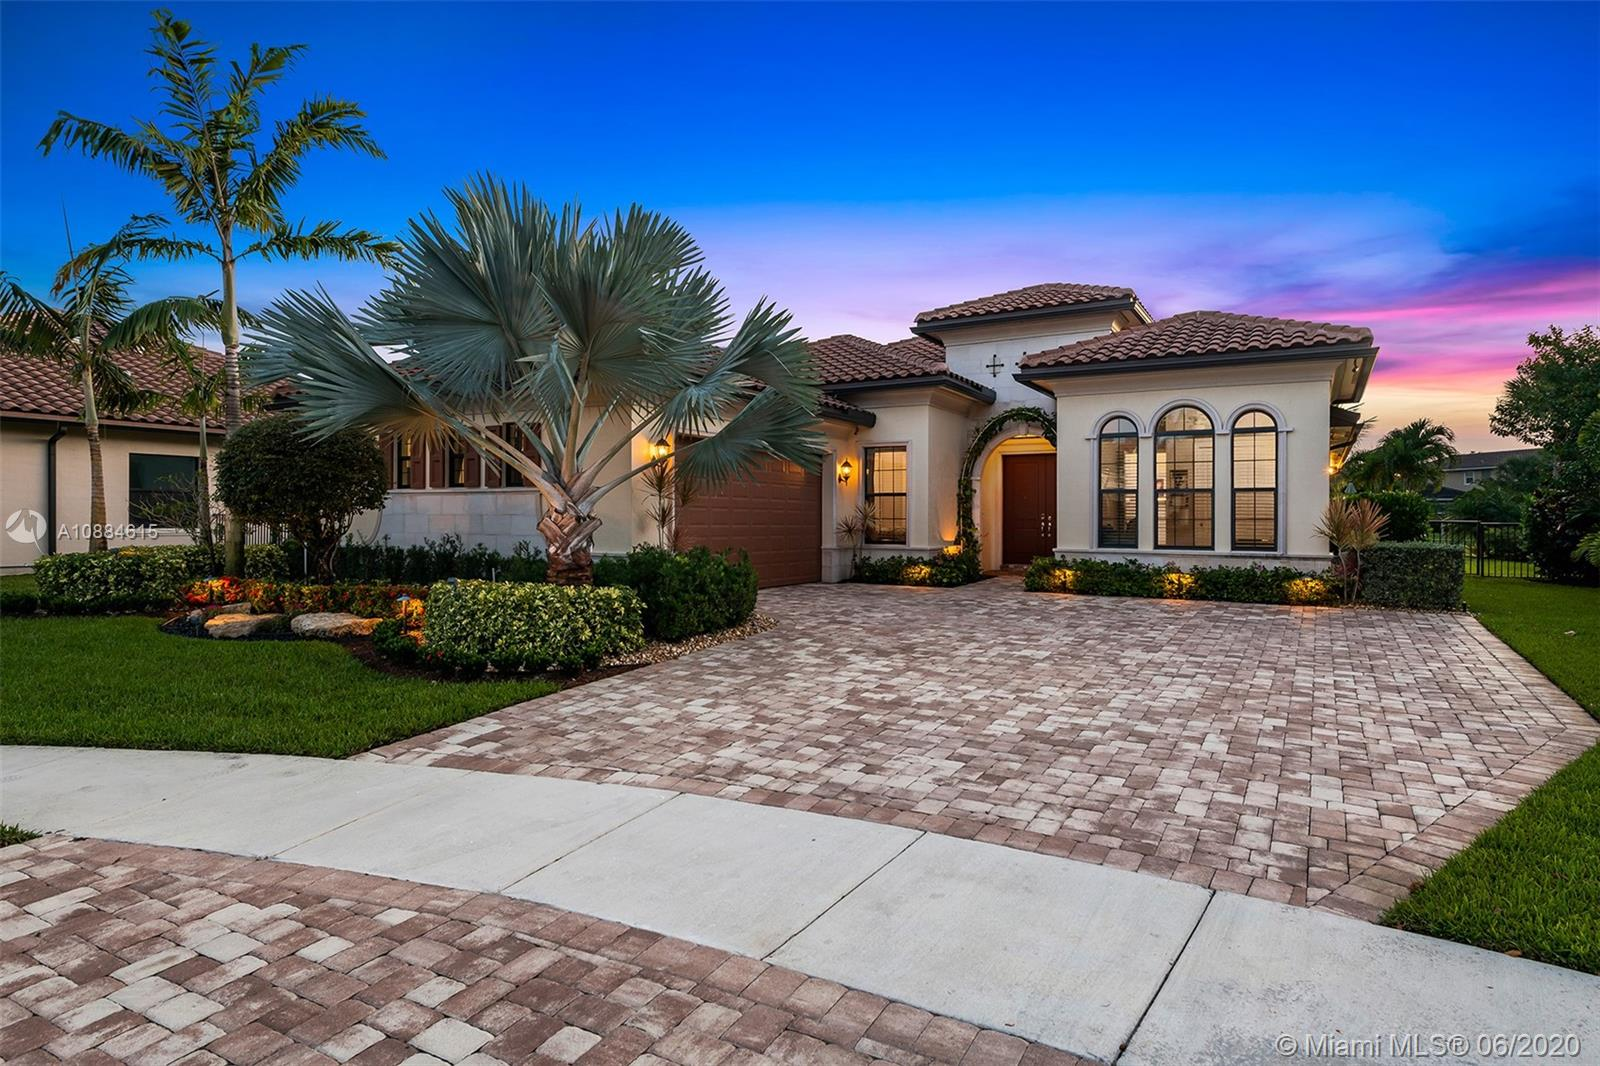 Wow! Here is the one you have been waiting for! Come see this rarely available move in ready Hibiscus model with all the bells and whistles. Located in one of the most prestigious neighborhood's in Parkland. This Heron Bay smart-home features a triple split floor plan with 4 bedrooms & 3 bathrooms. This open concept layout is perfect for any modern family. Be delighted with the recently updated chefs kitchen featuring Kitchen-Aid appliances, gas stove, double ovens, granite countertops and a wine fridge! Home also features custom built-ins and whole home generator. Enjoy some family time in your own backyard oasis with a screened in lanai, Van Kirk Pool with infinity spa, tanning shelf & swim jets. There is also a BBQ gas hook up for your out door kitchen. Come see this one today!